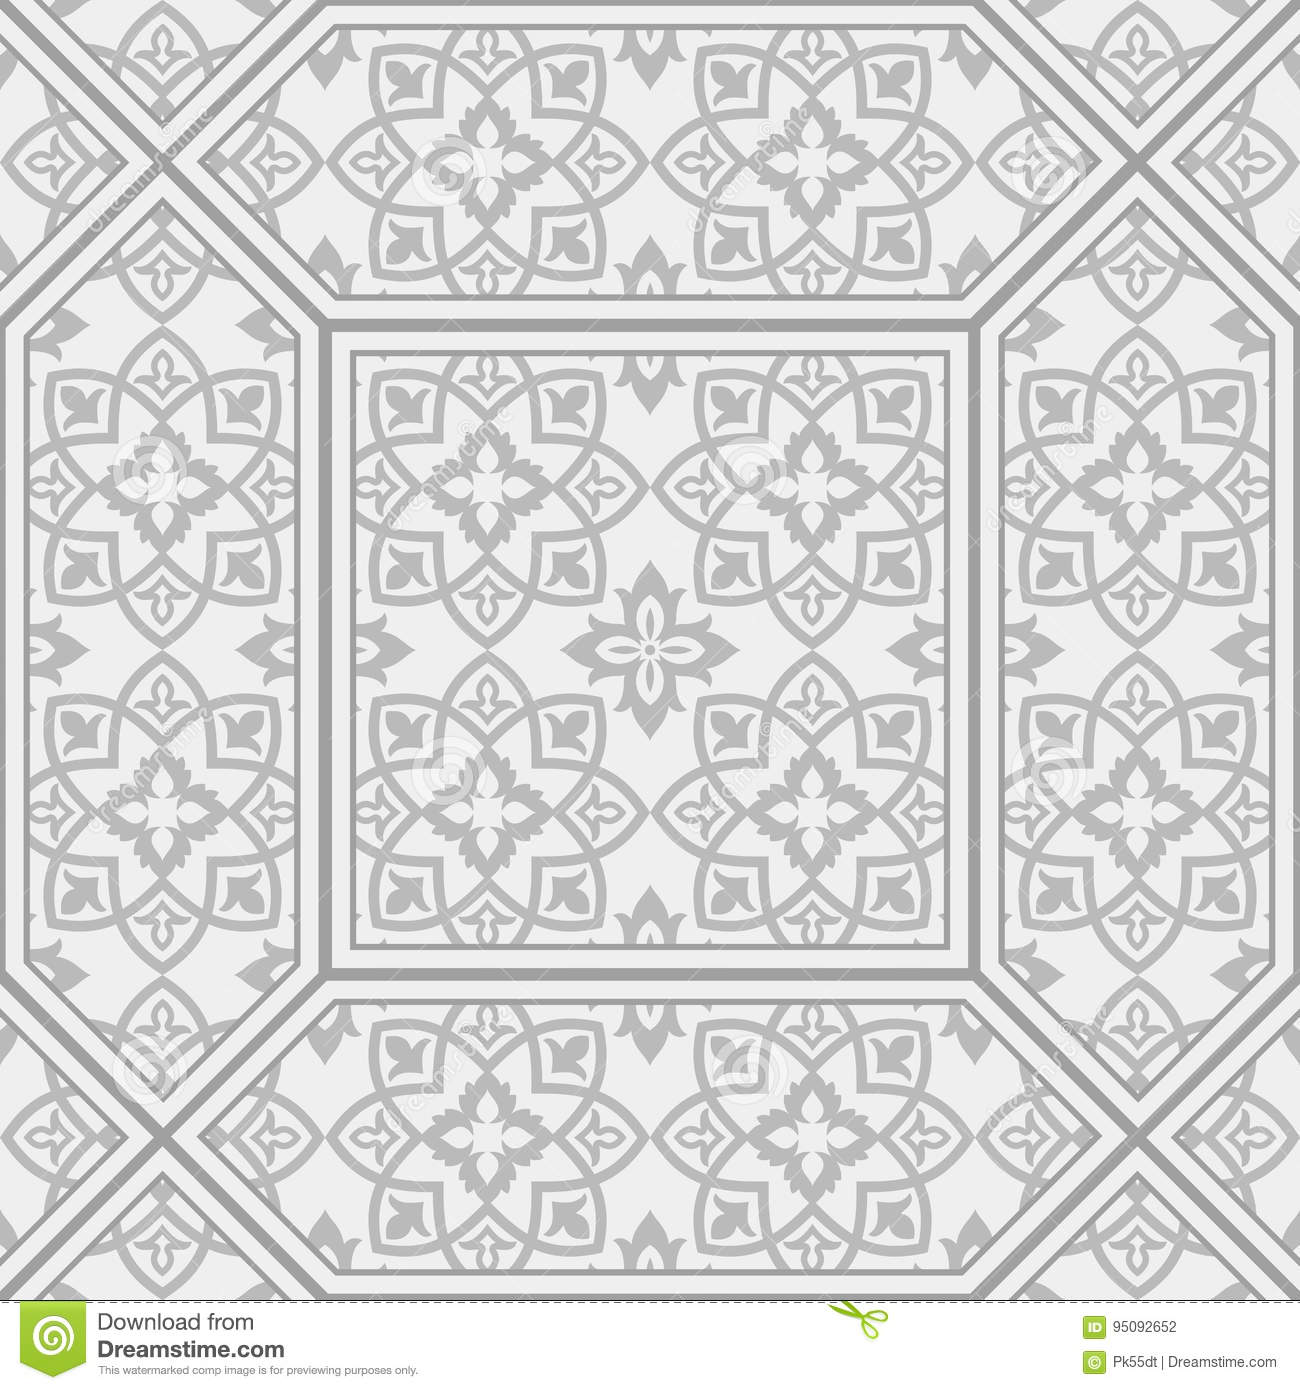 Vintage Patterned Tiles Patterned Floor And Wall Tiles